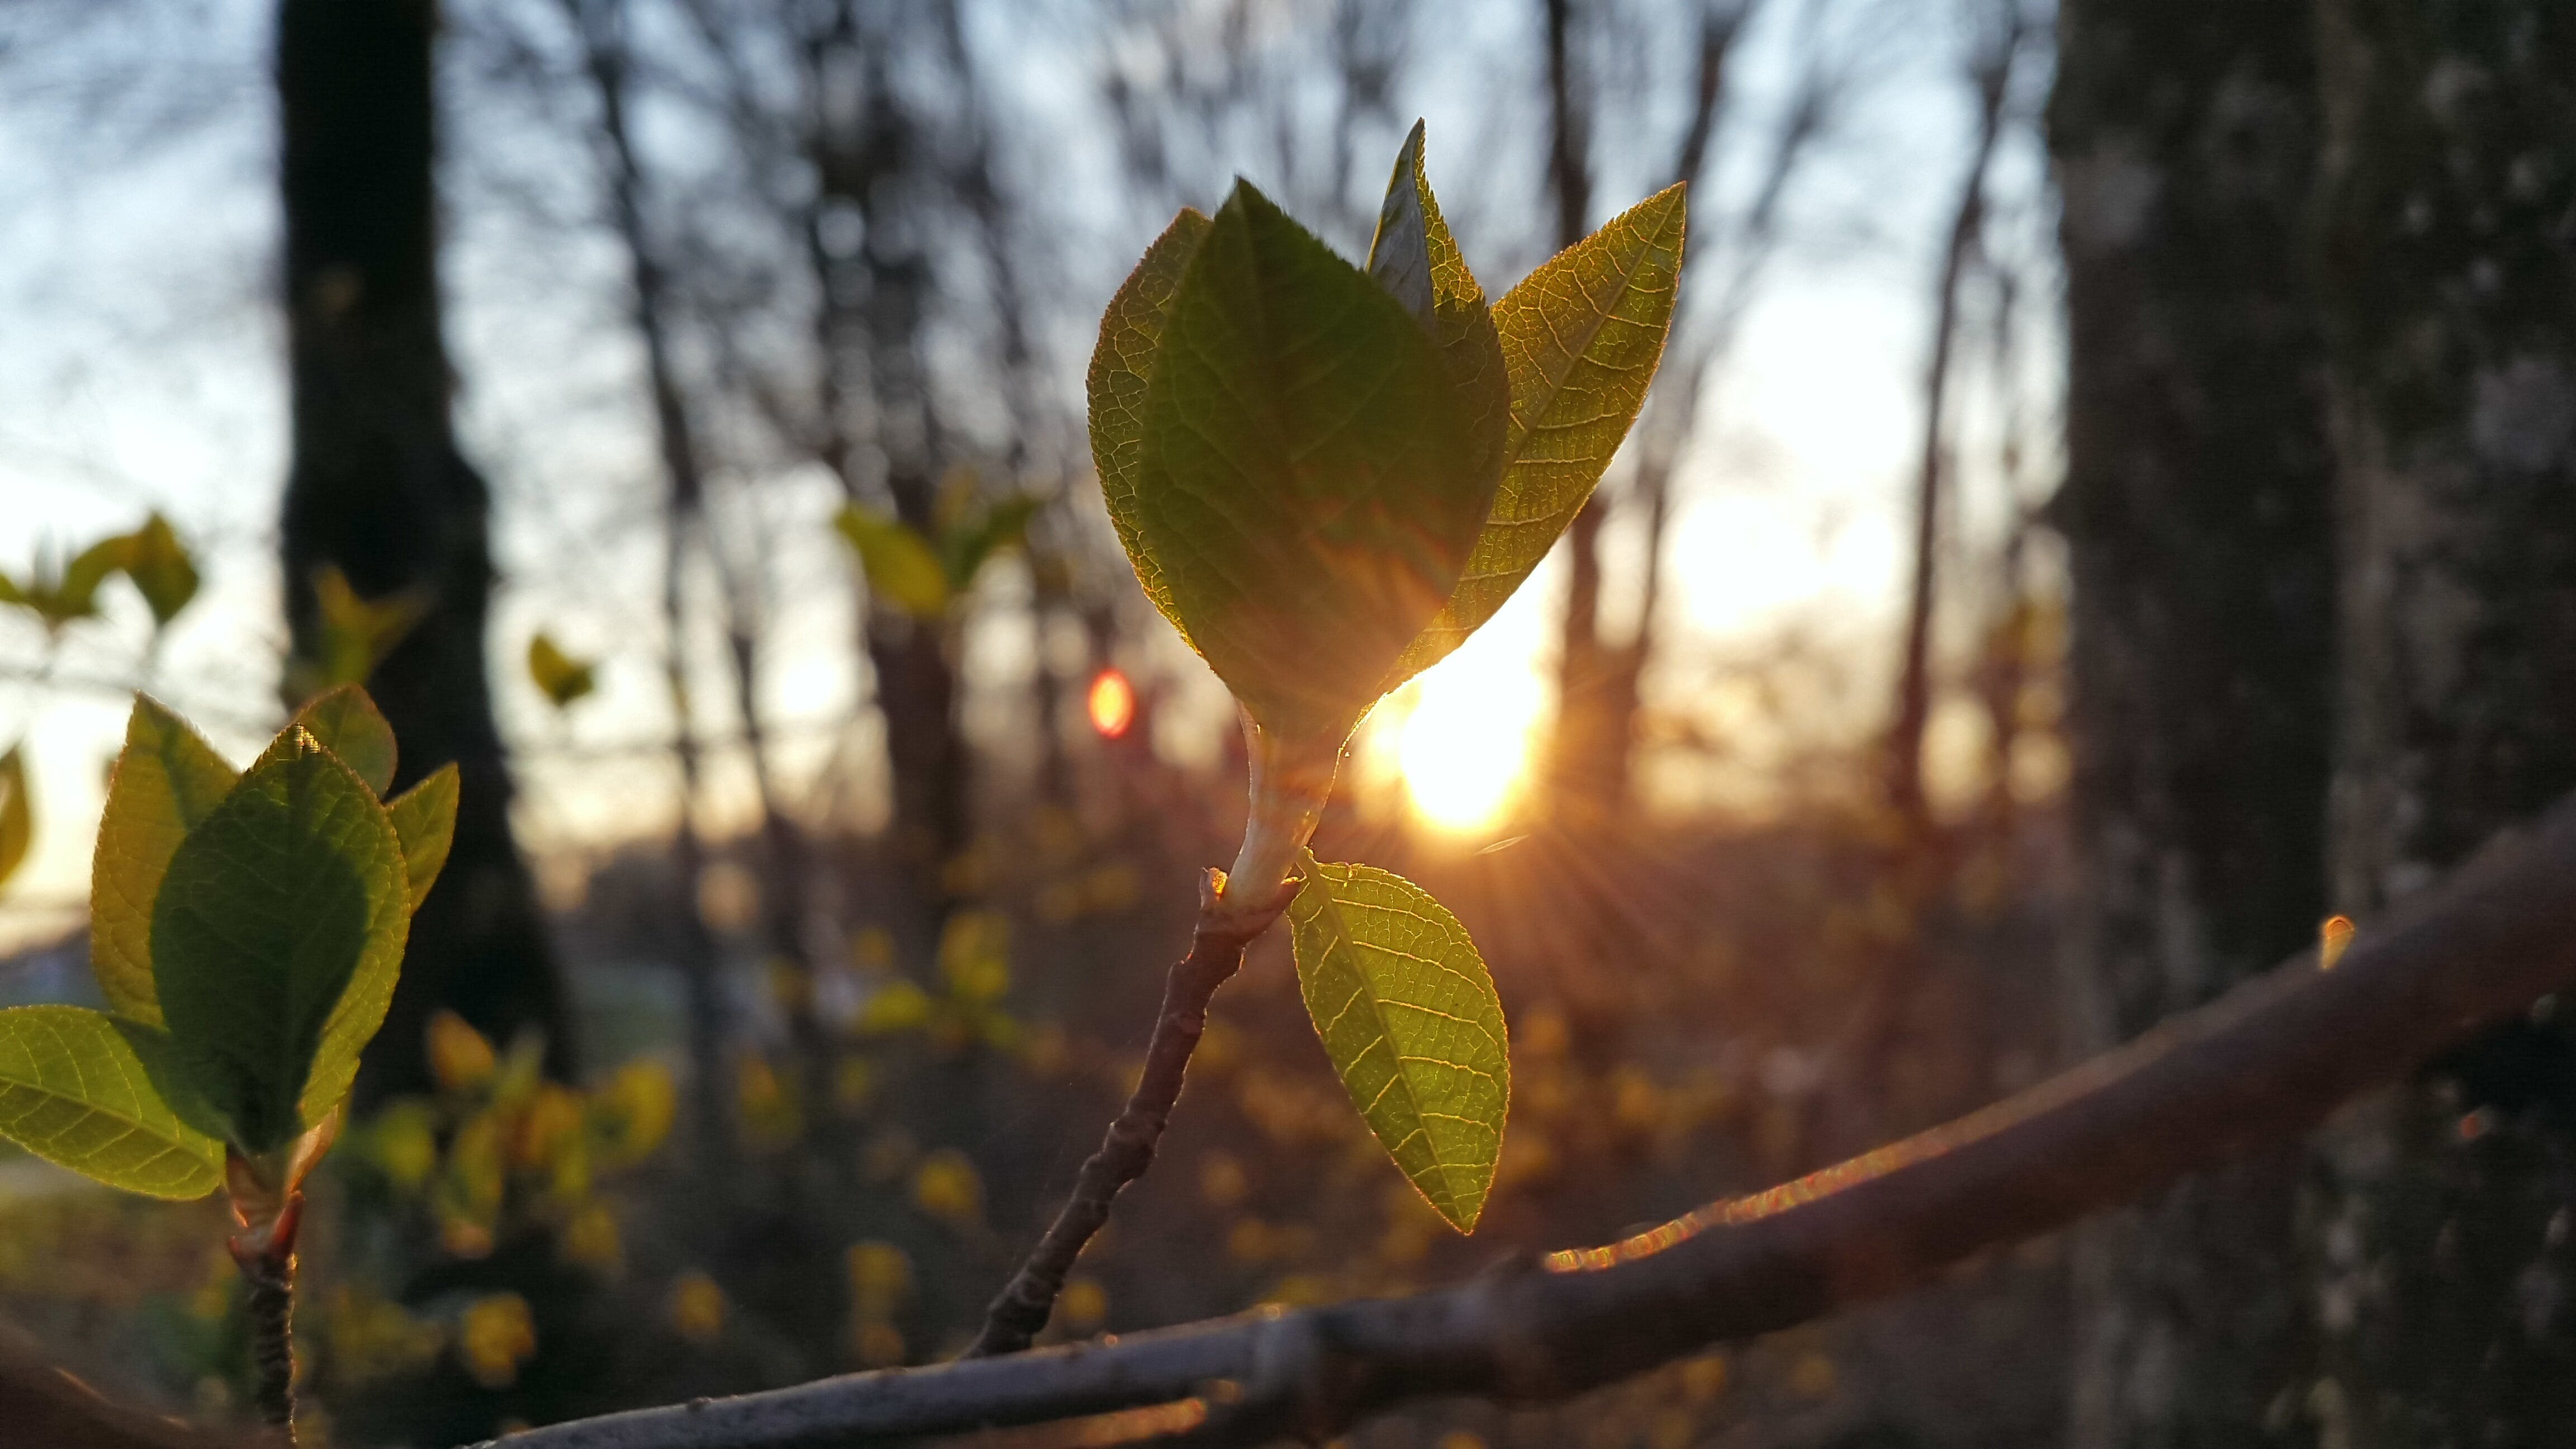 Free stock photo of branch, bud, first leaves, green